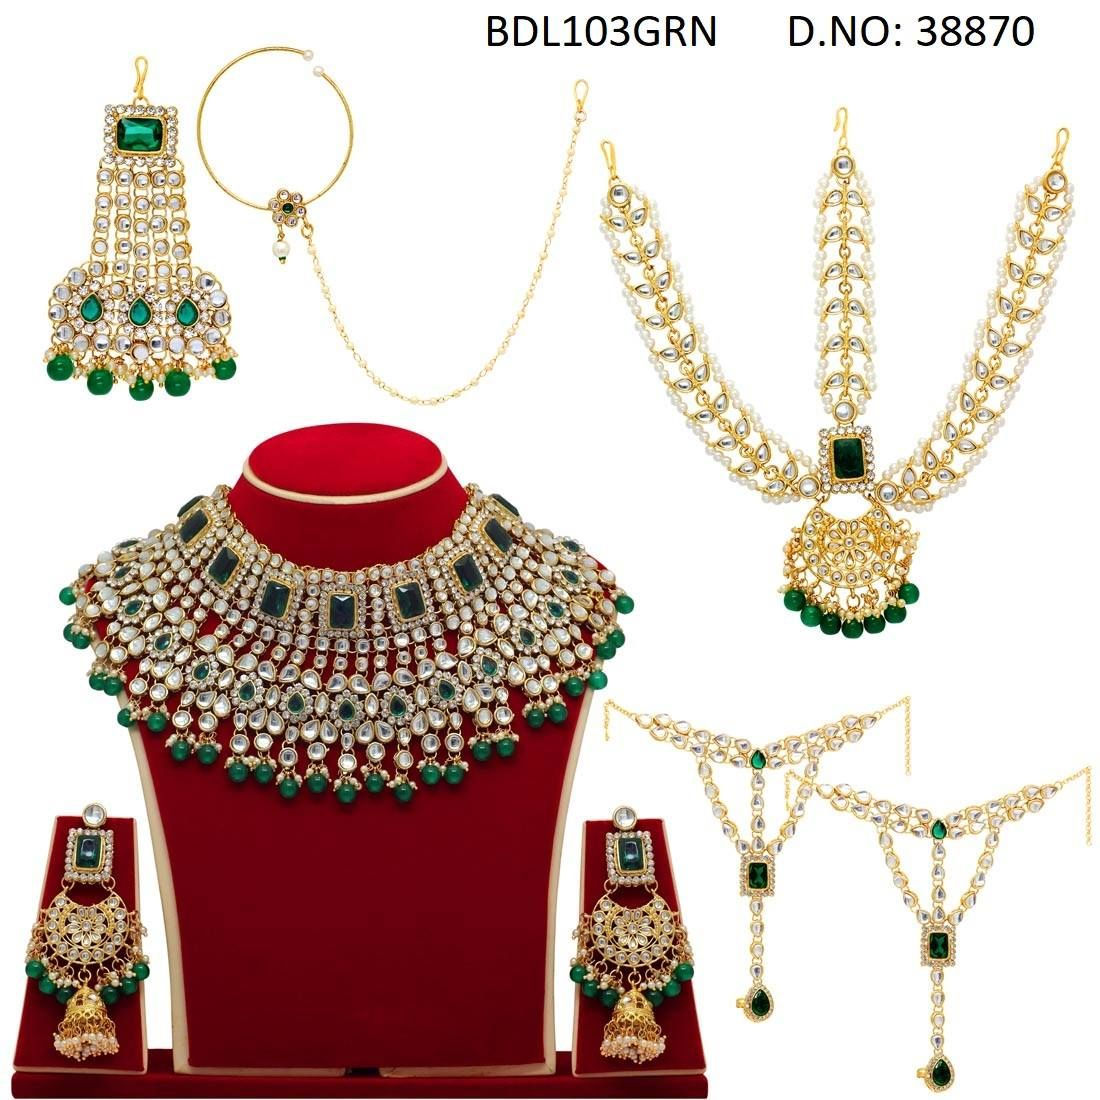 2d696d99c8d98 Best Seller Fashion Jewelry Collection, Bollywood jewelry designs ...